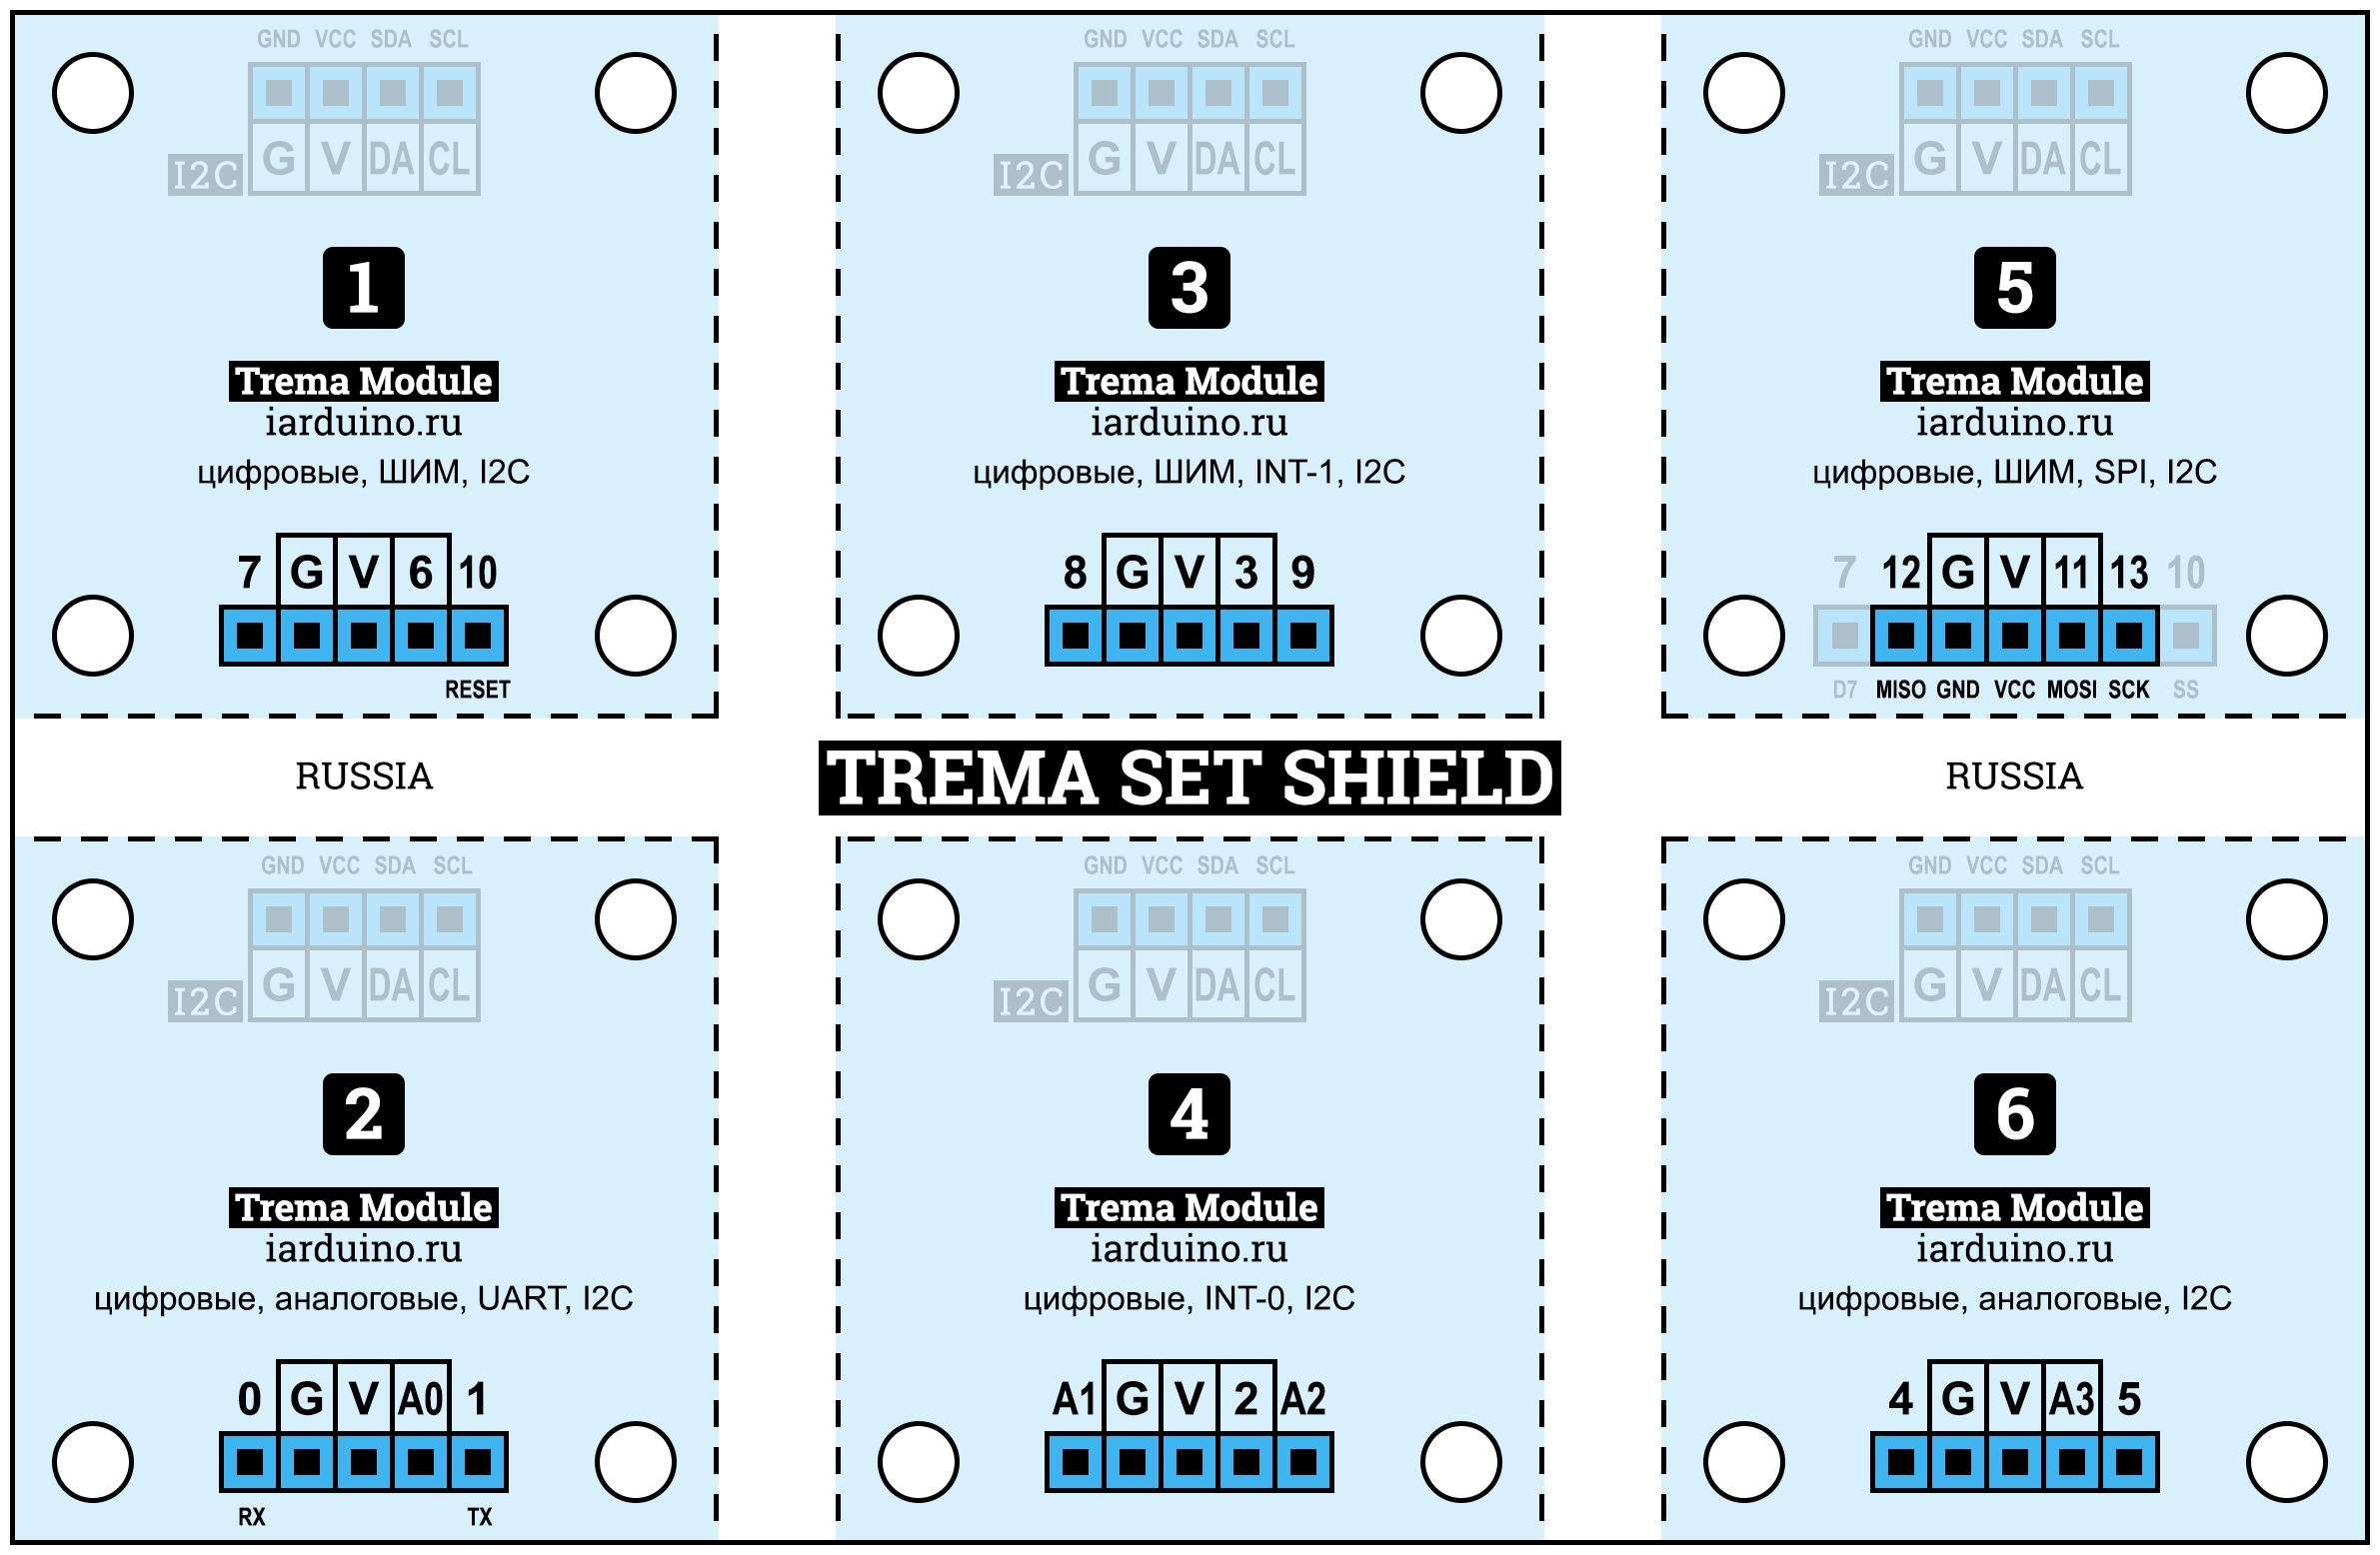 Схема подключения модулей к Trema Set Shield по программной шине UART